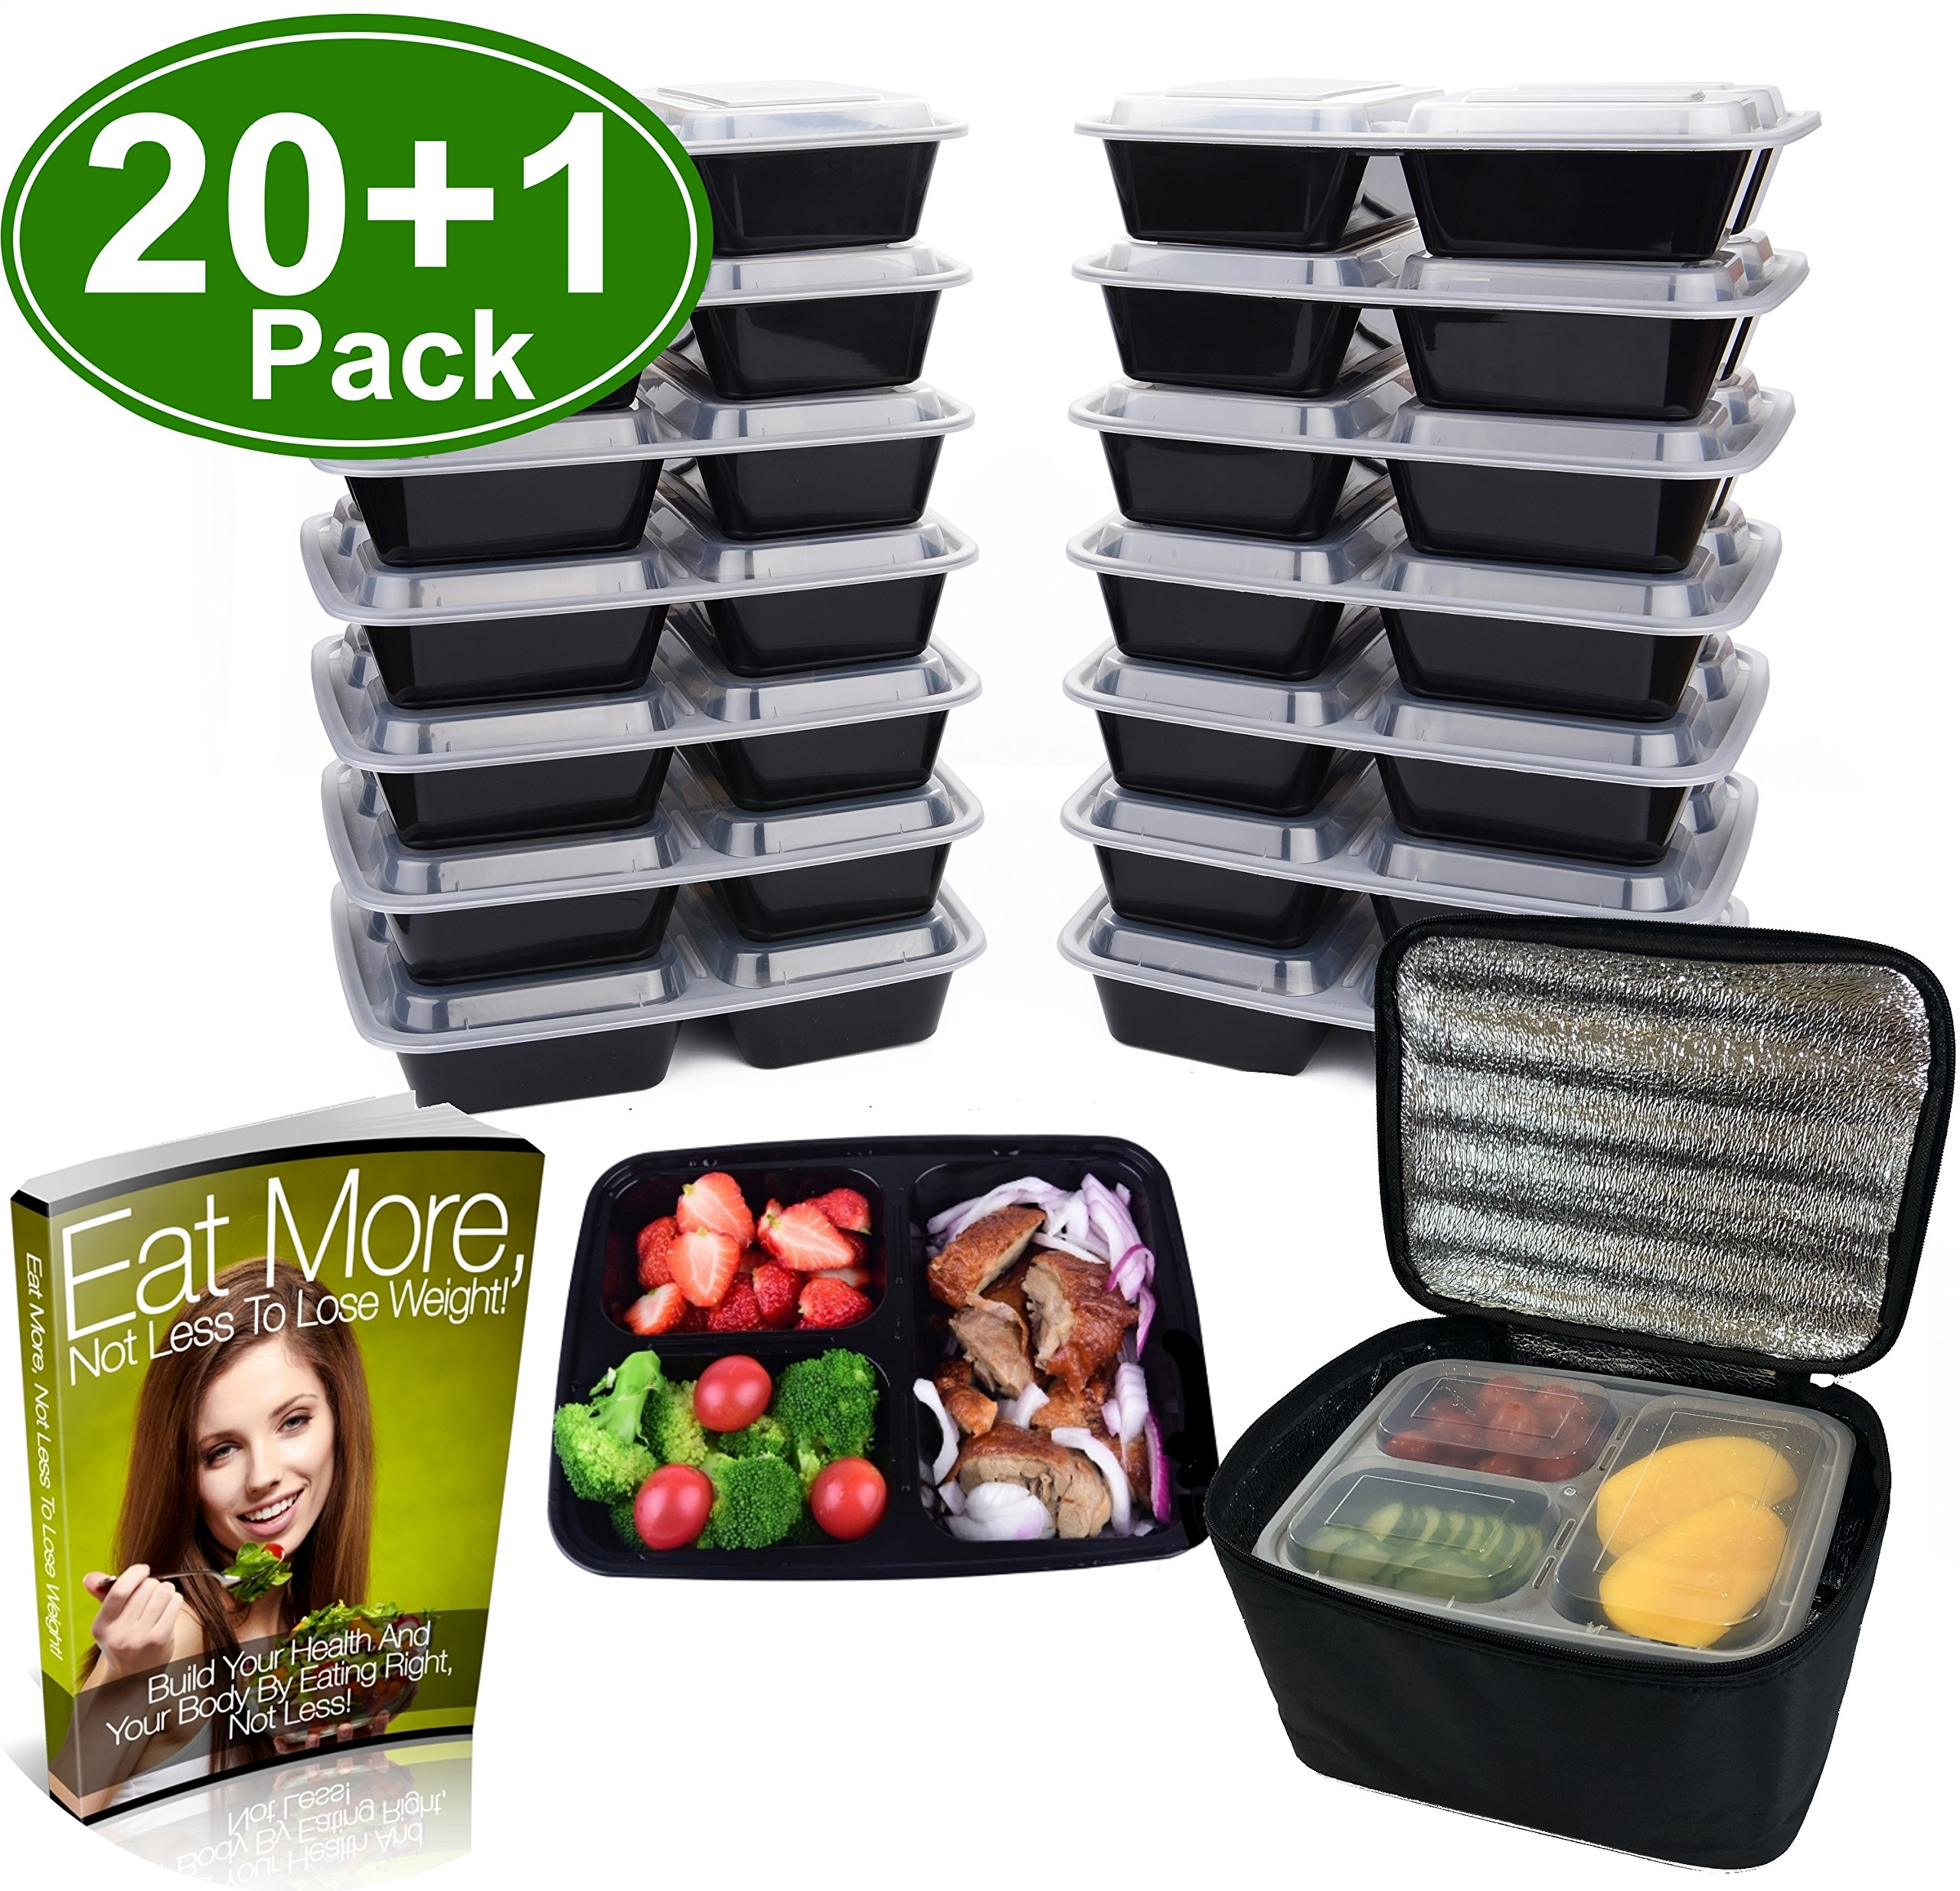 Meal Prep Containers 3 Compartment [20 Pack], w/Bonus Lunch Bag, BPA Free, Freezer, Microwave, Upper Dishwasher Safe, Reusable Bento Boxes, Lunch Boxes, Lunch Containers(32 oz)